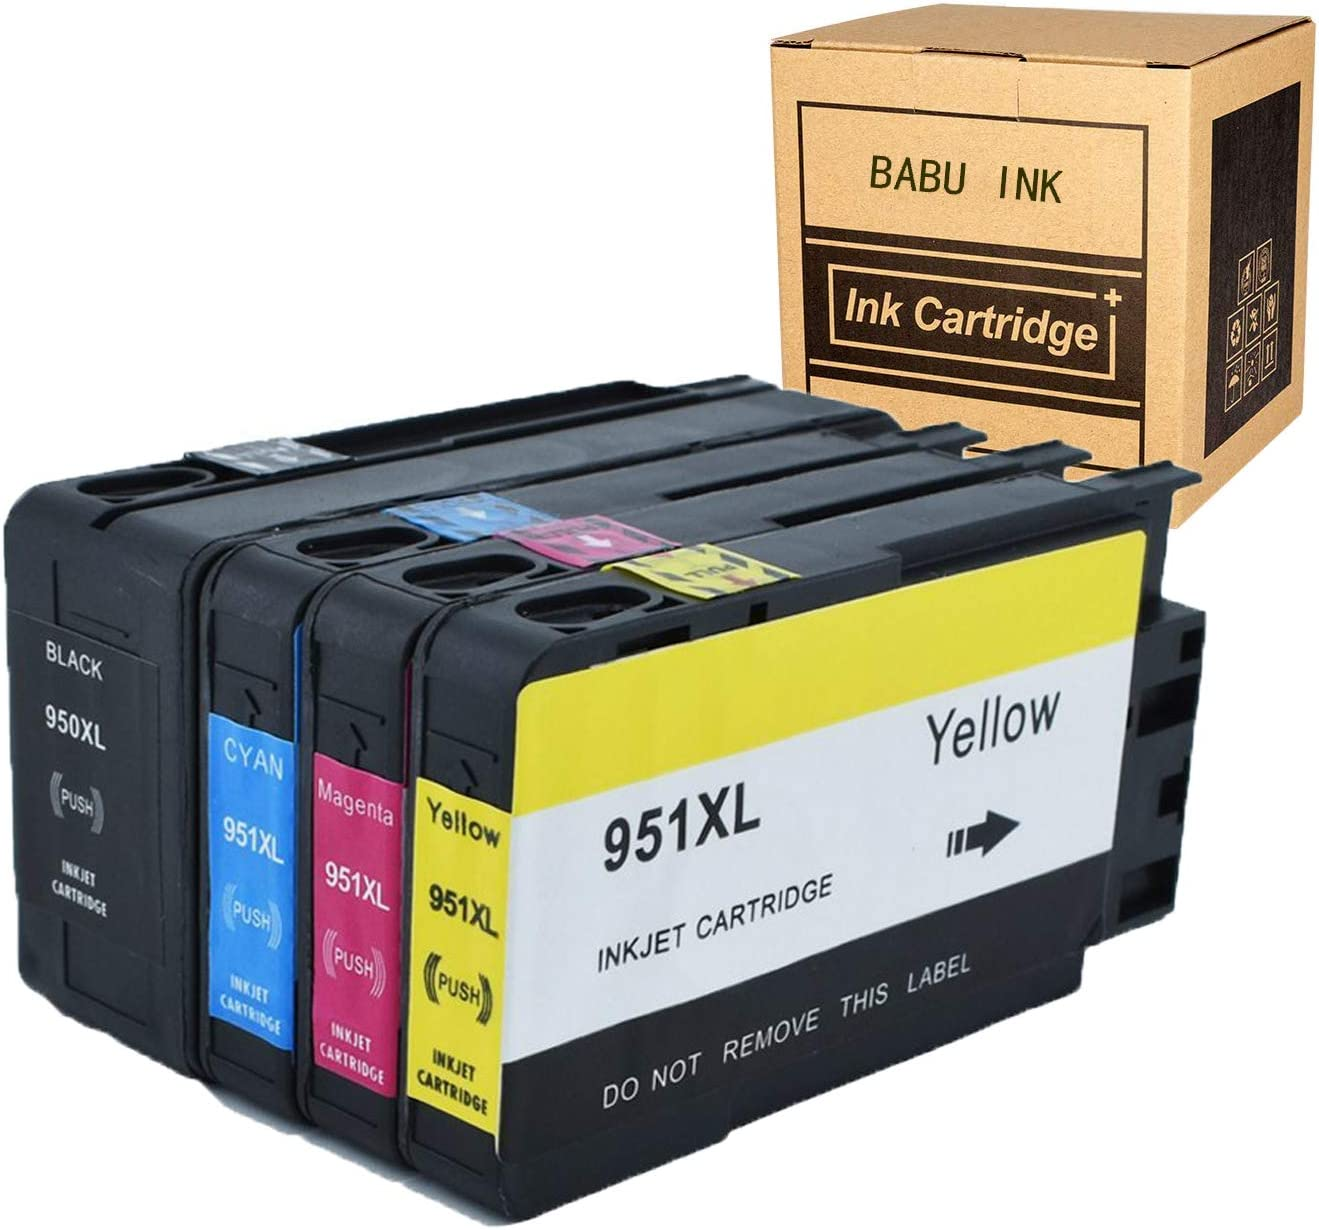 BABU 4pack Compatible Ink Cartridges Replacement for HP 950 951XL Work for HP Officejet PRO 8600 8610 8620 8630 8100 8640 8660 8615 8625 251dw 276dw Printer (1 Black,1 Cyan,1 Magenta,1 Yellow)